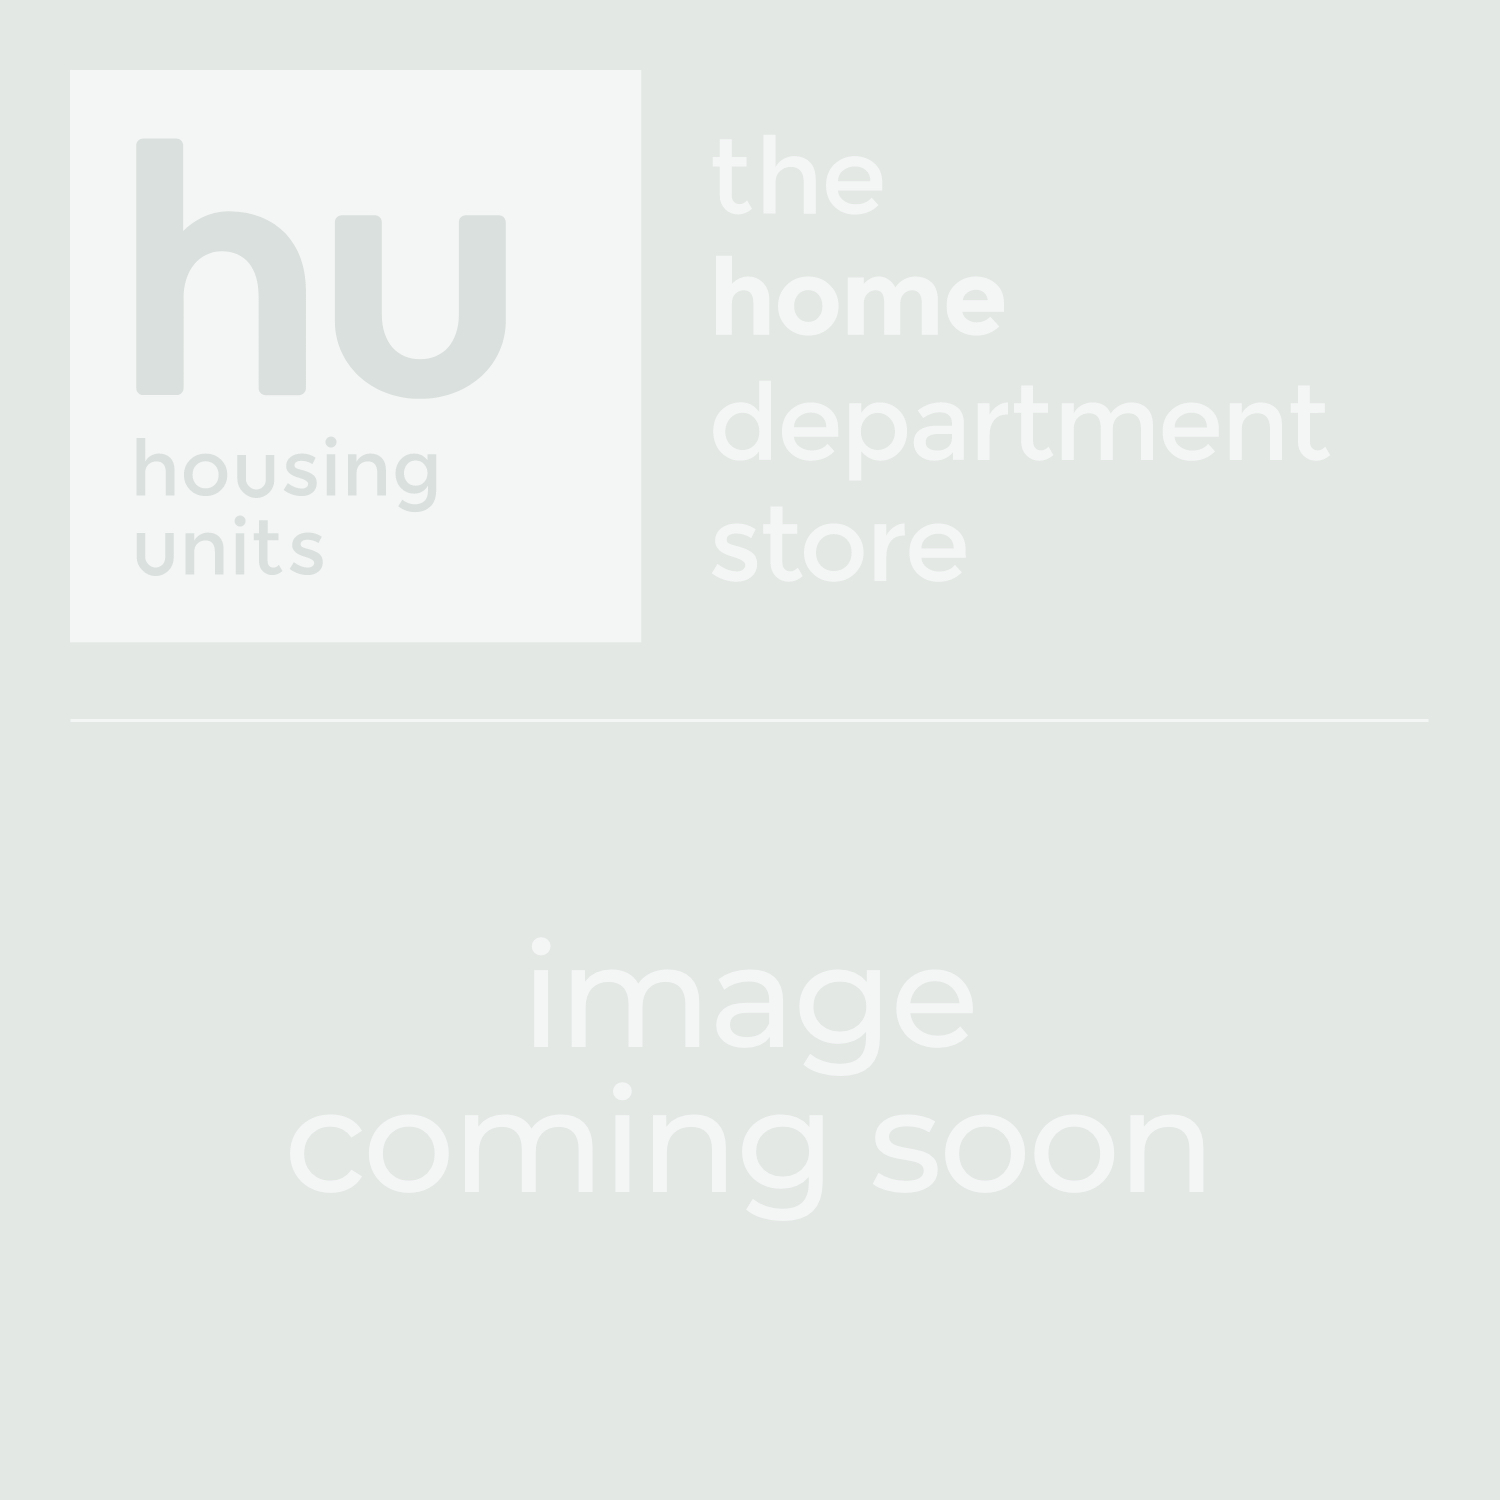 Housing Units Home Glass Cleaner